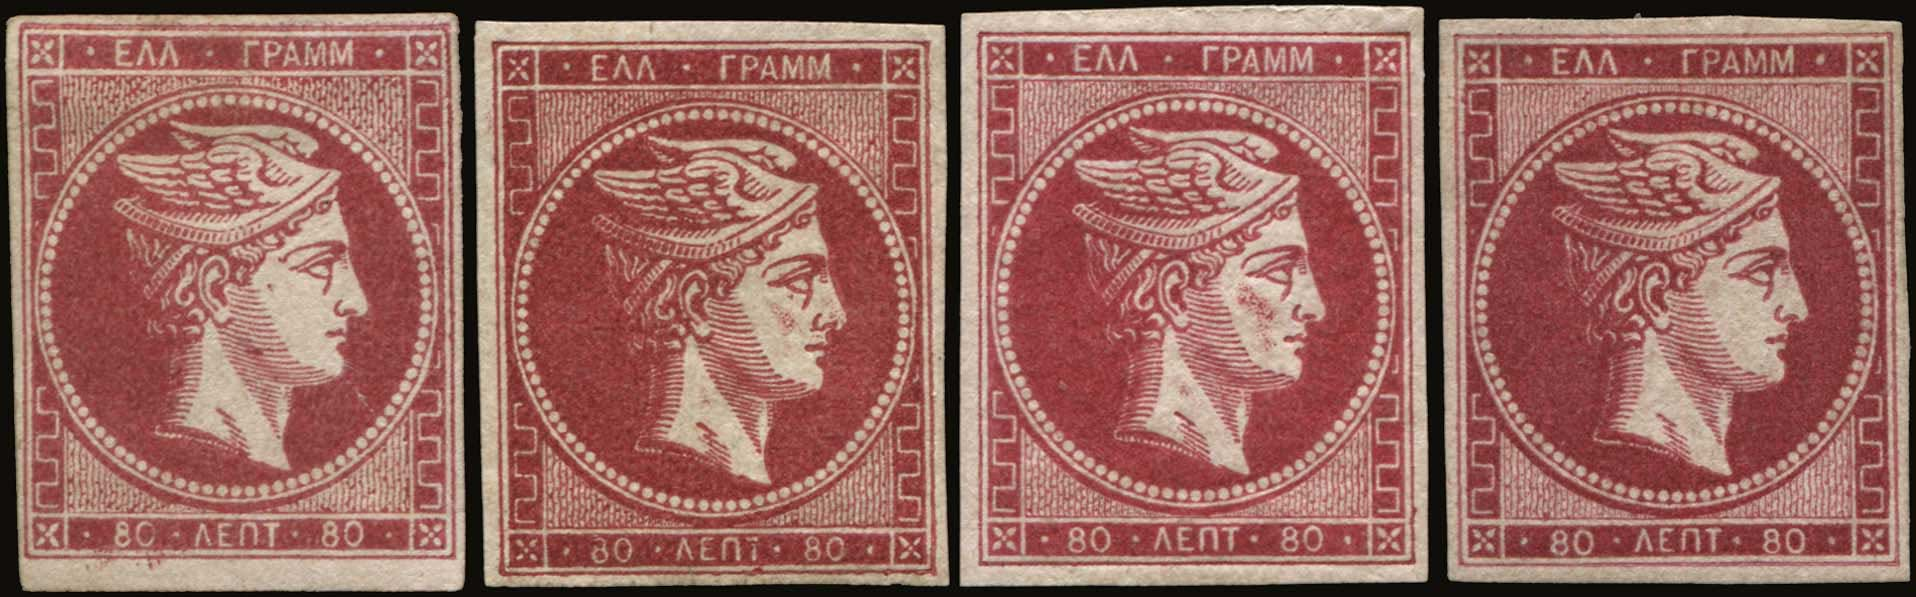 Lot 115 - -  LARGE HERMES HEAD 1862/67 consecutive athens printings -  A. Karamitsos Public Auction 639 General Stamp Sale